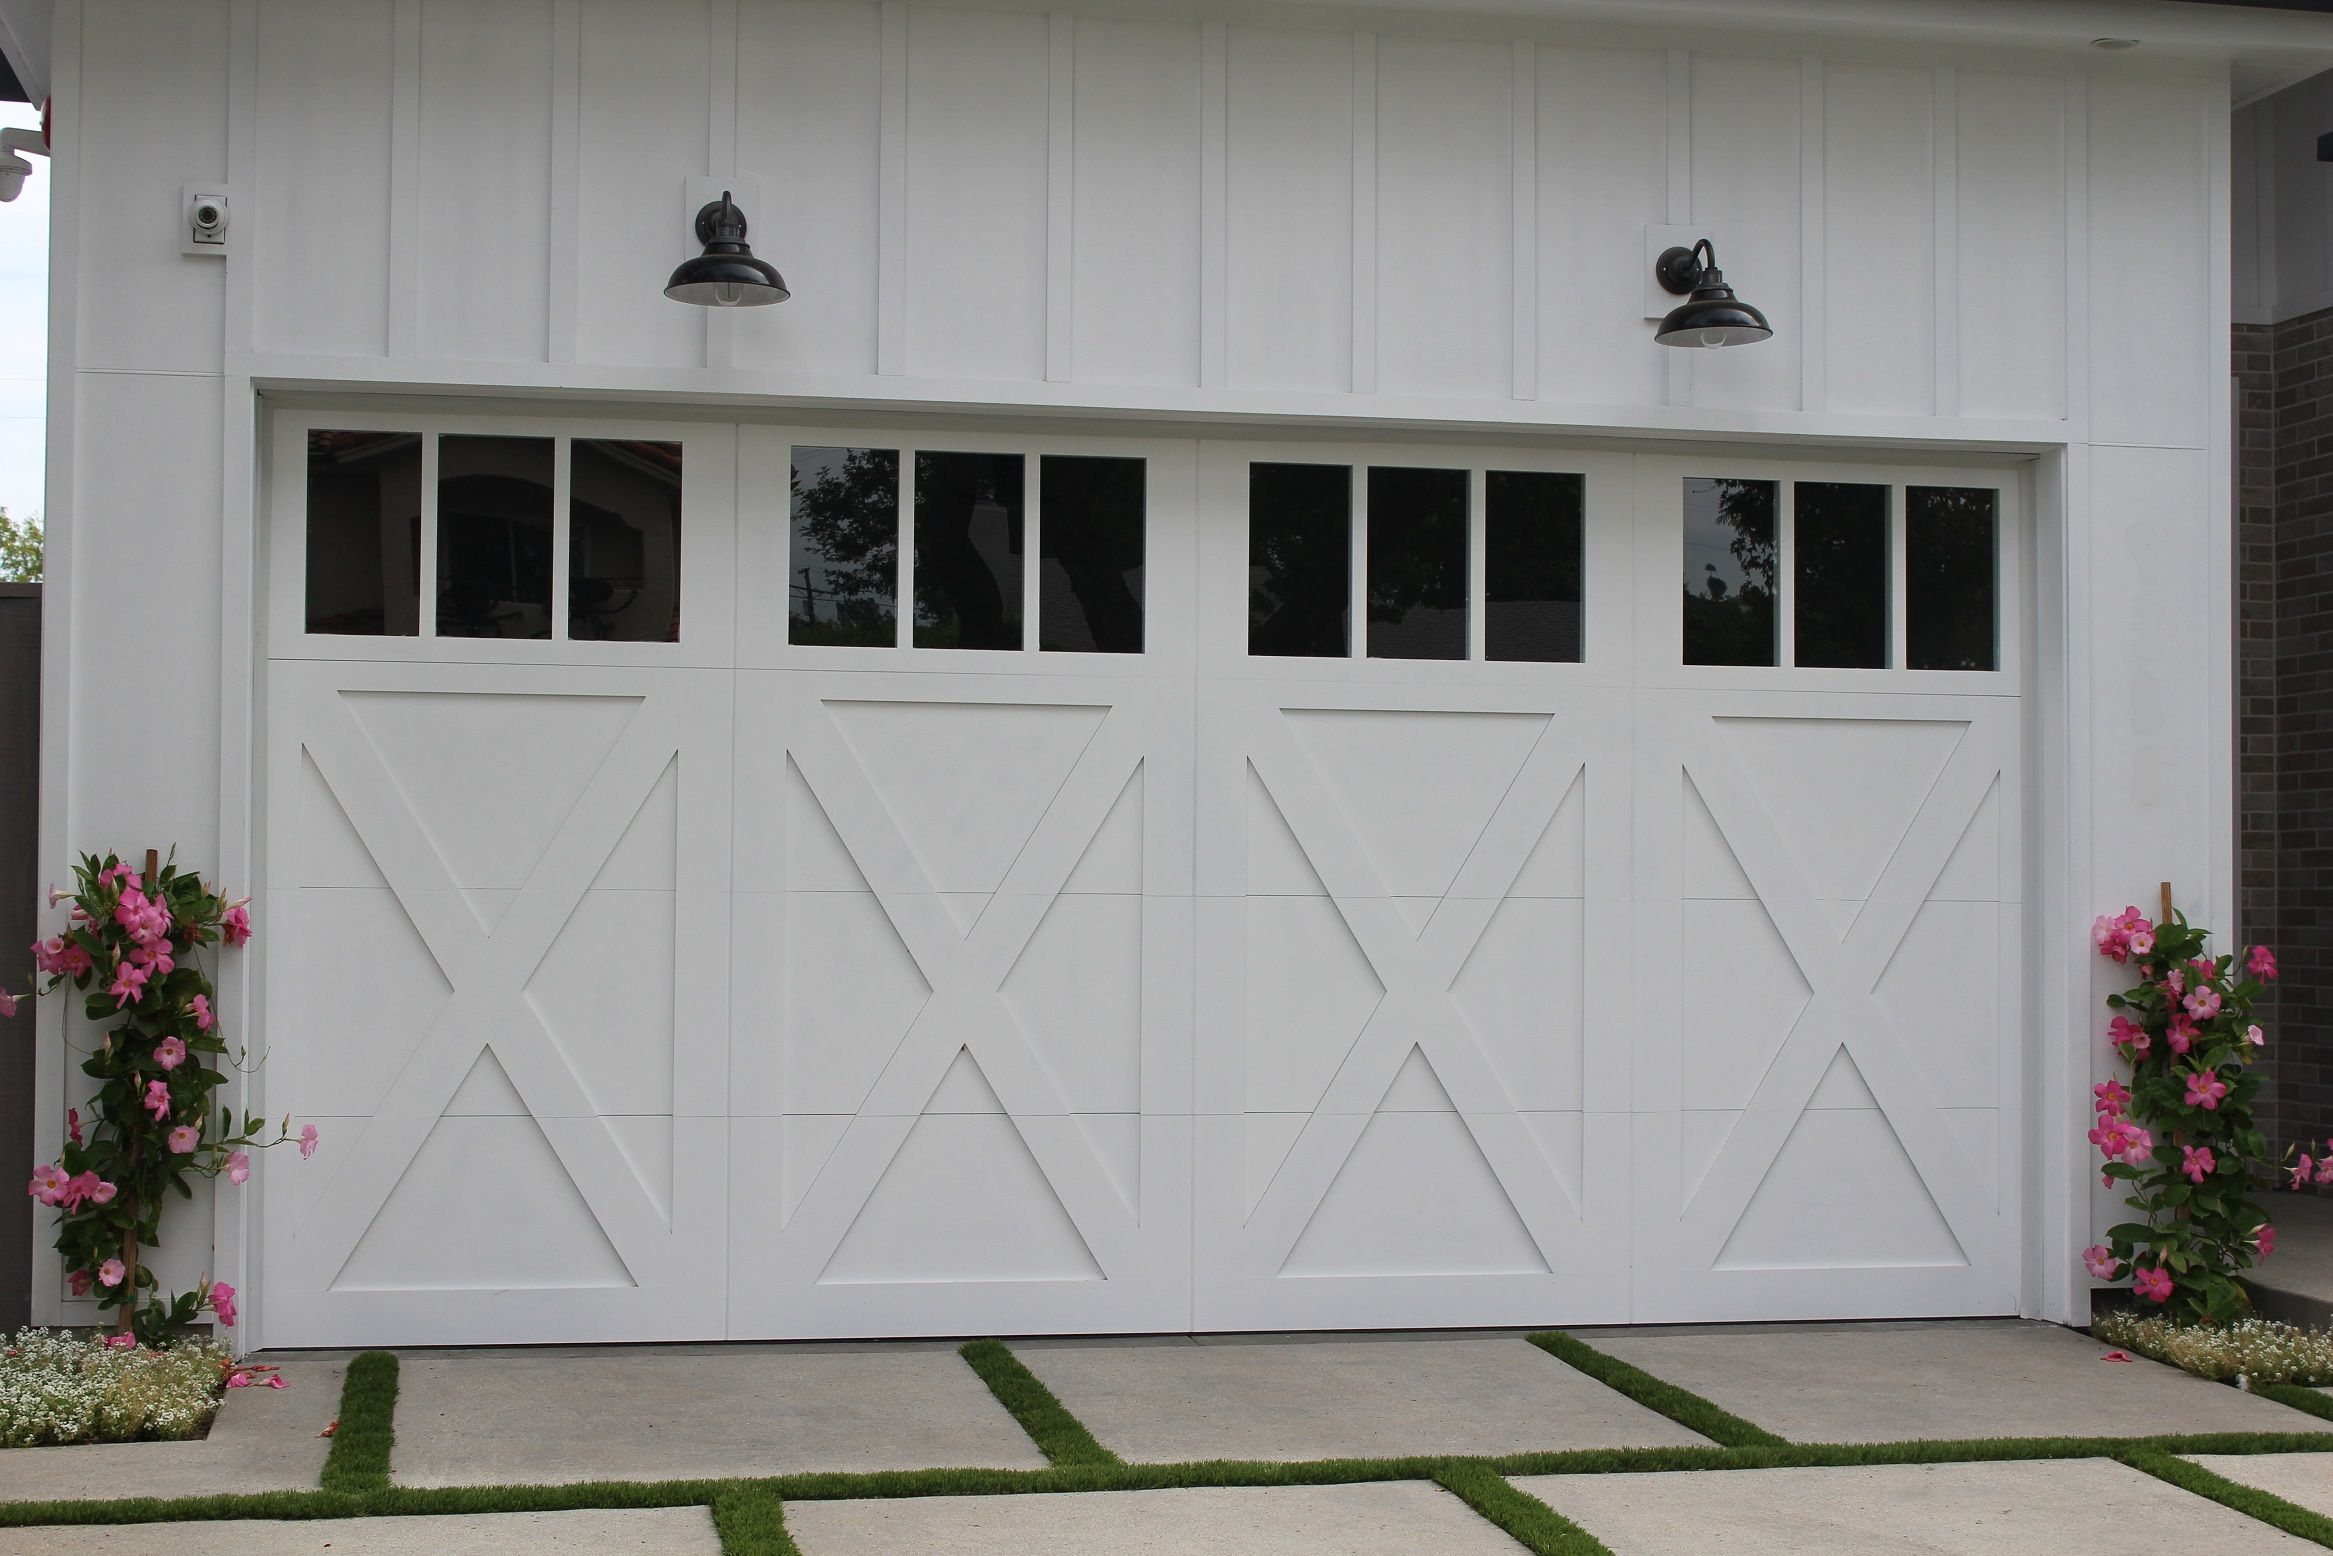 Clopay Coachman Collection Insulated Steel And Composite Carriage House Garage  Door. Cross Buck Design With REc13 Windows In White. Www.clopaydoor.com.